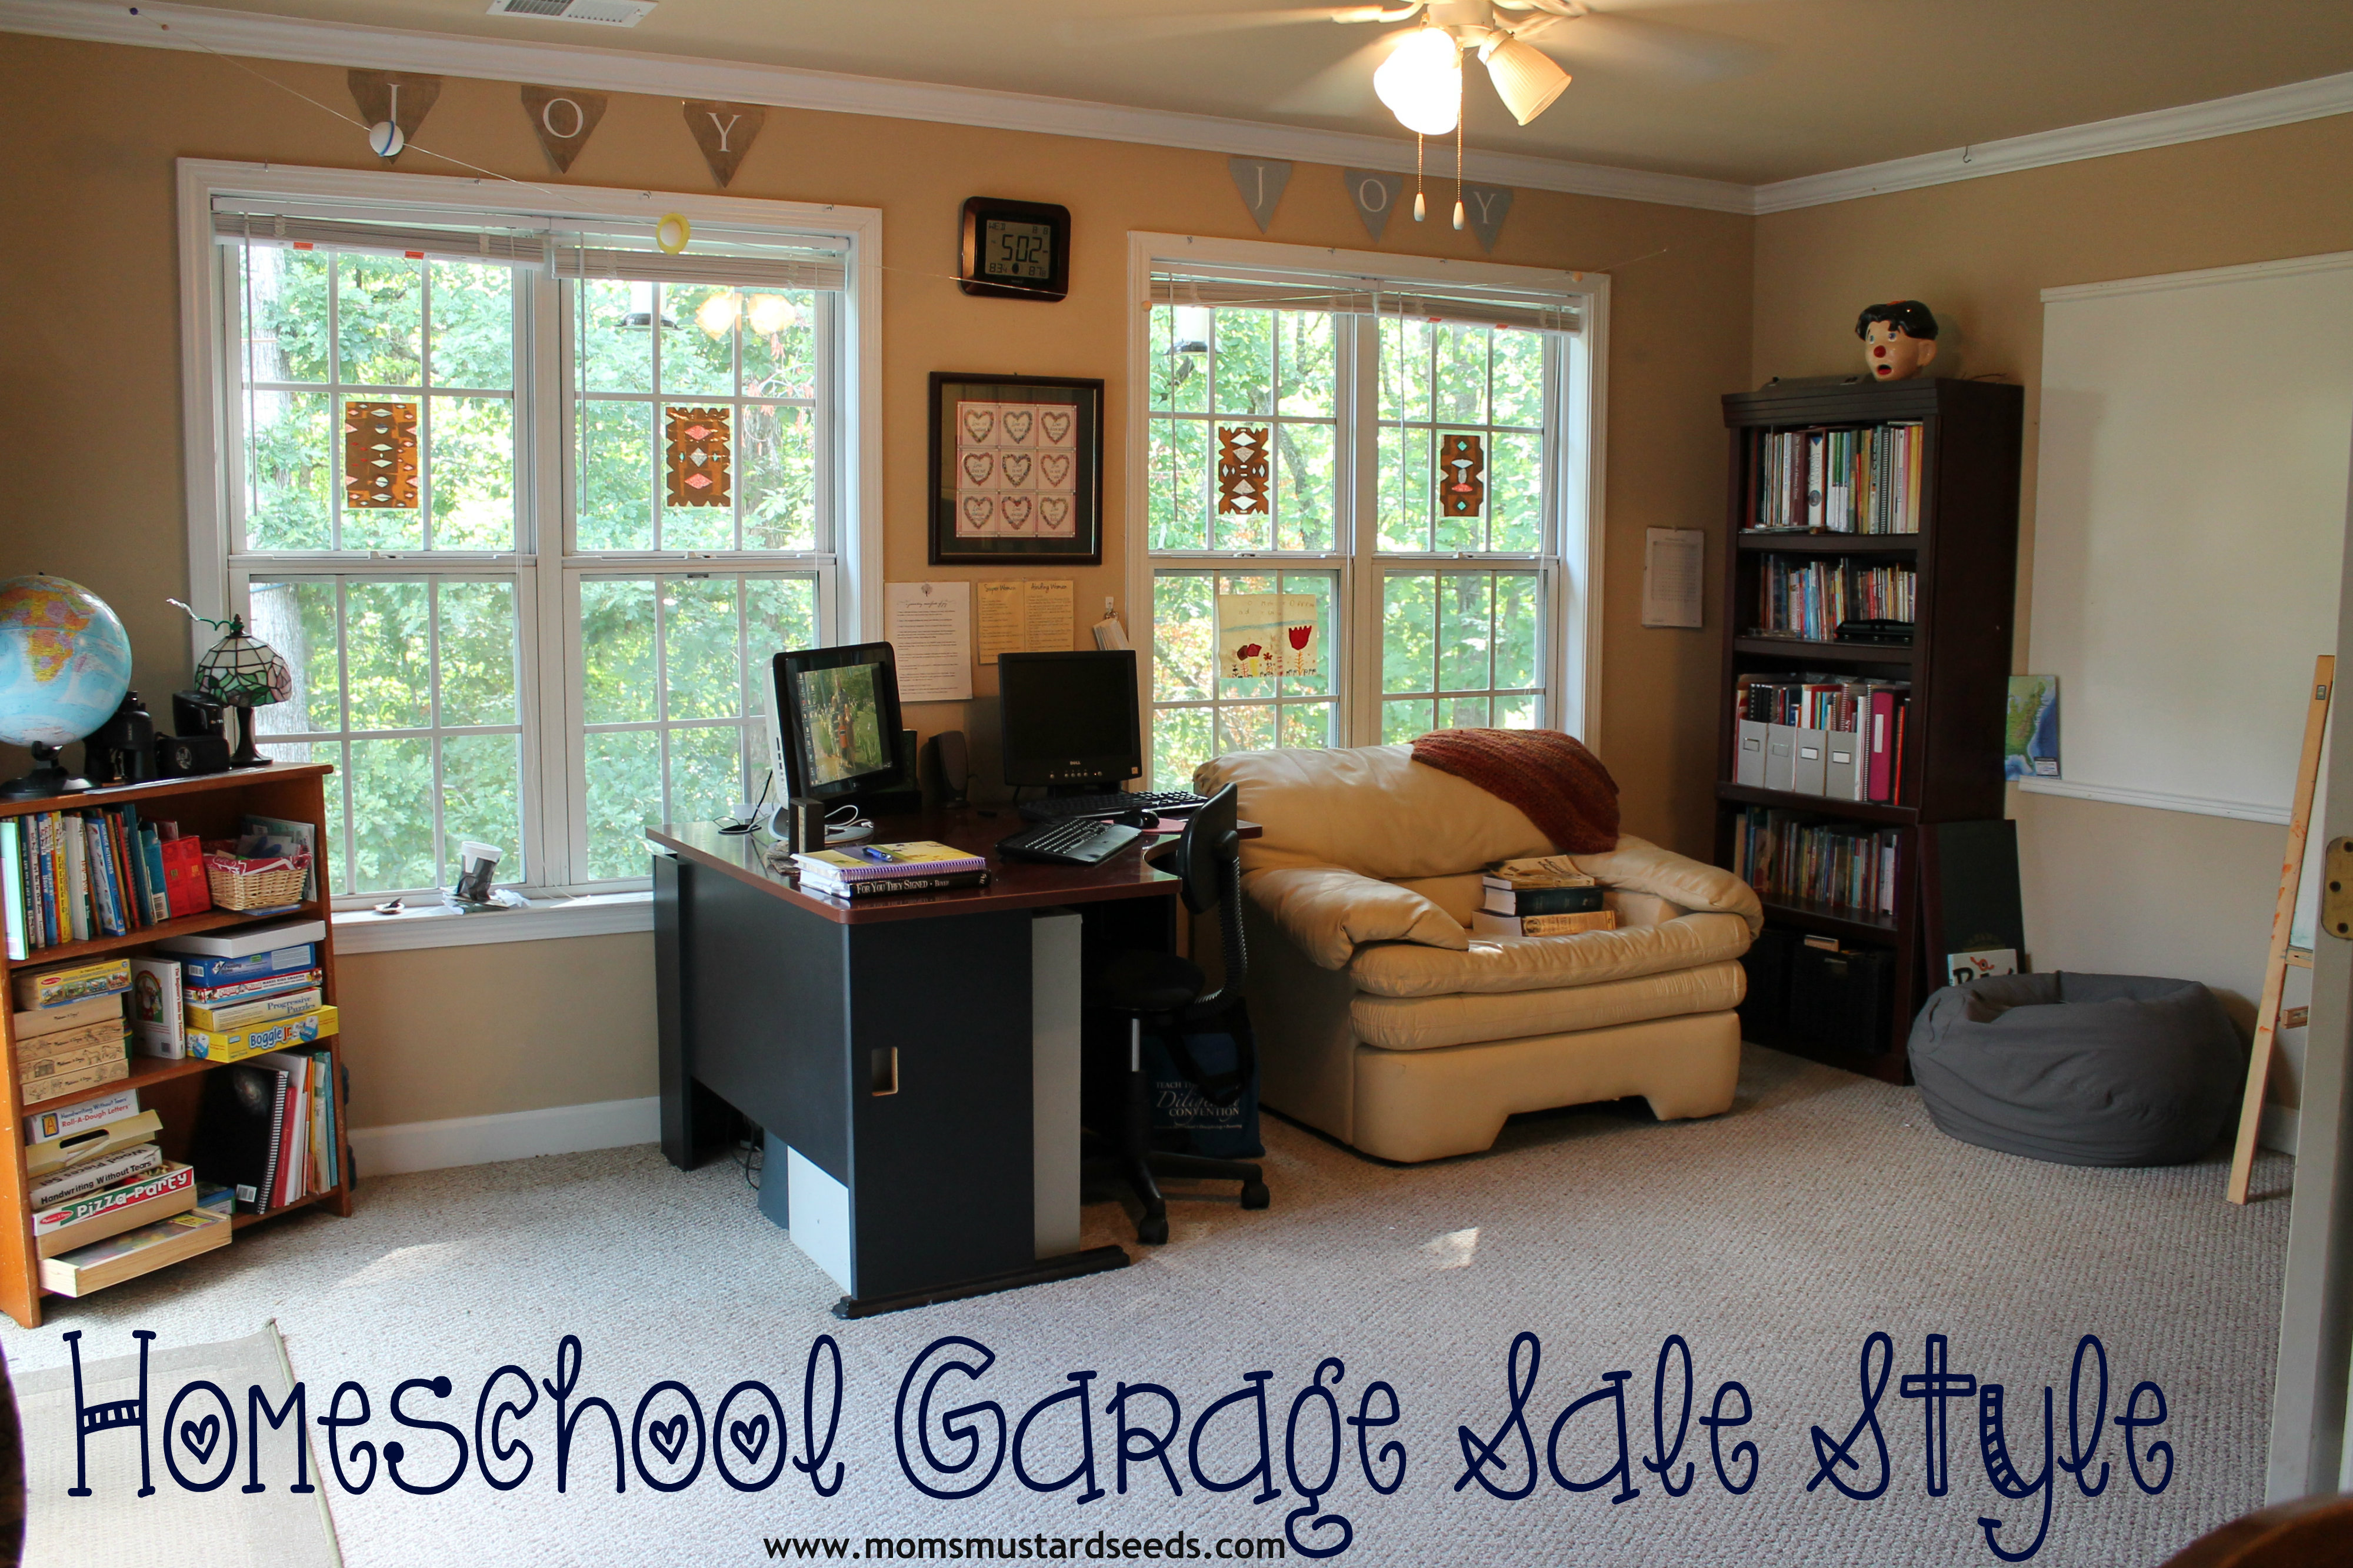 Home School Furniture New Homeschool Classroom Garage Sale Style  Mom's Mustard Seeds Inspiration